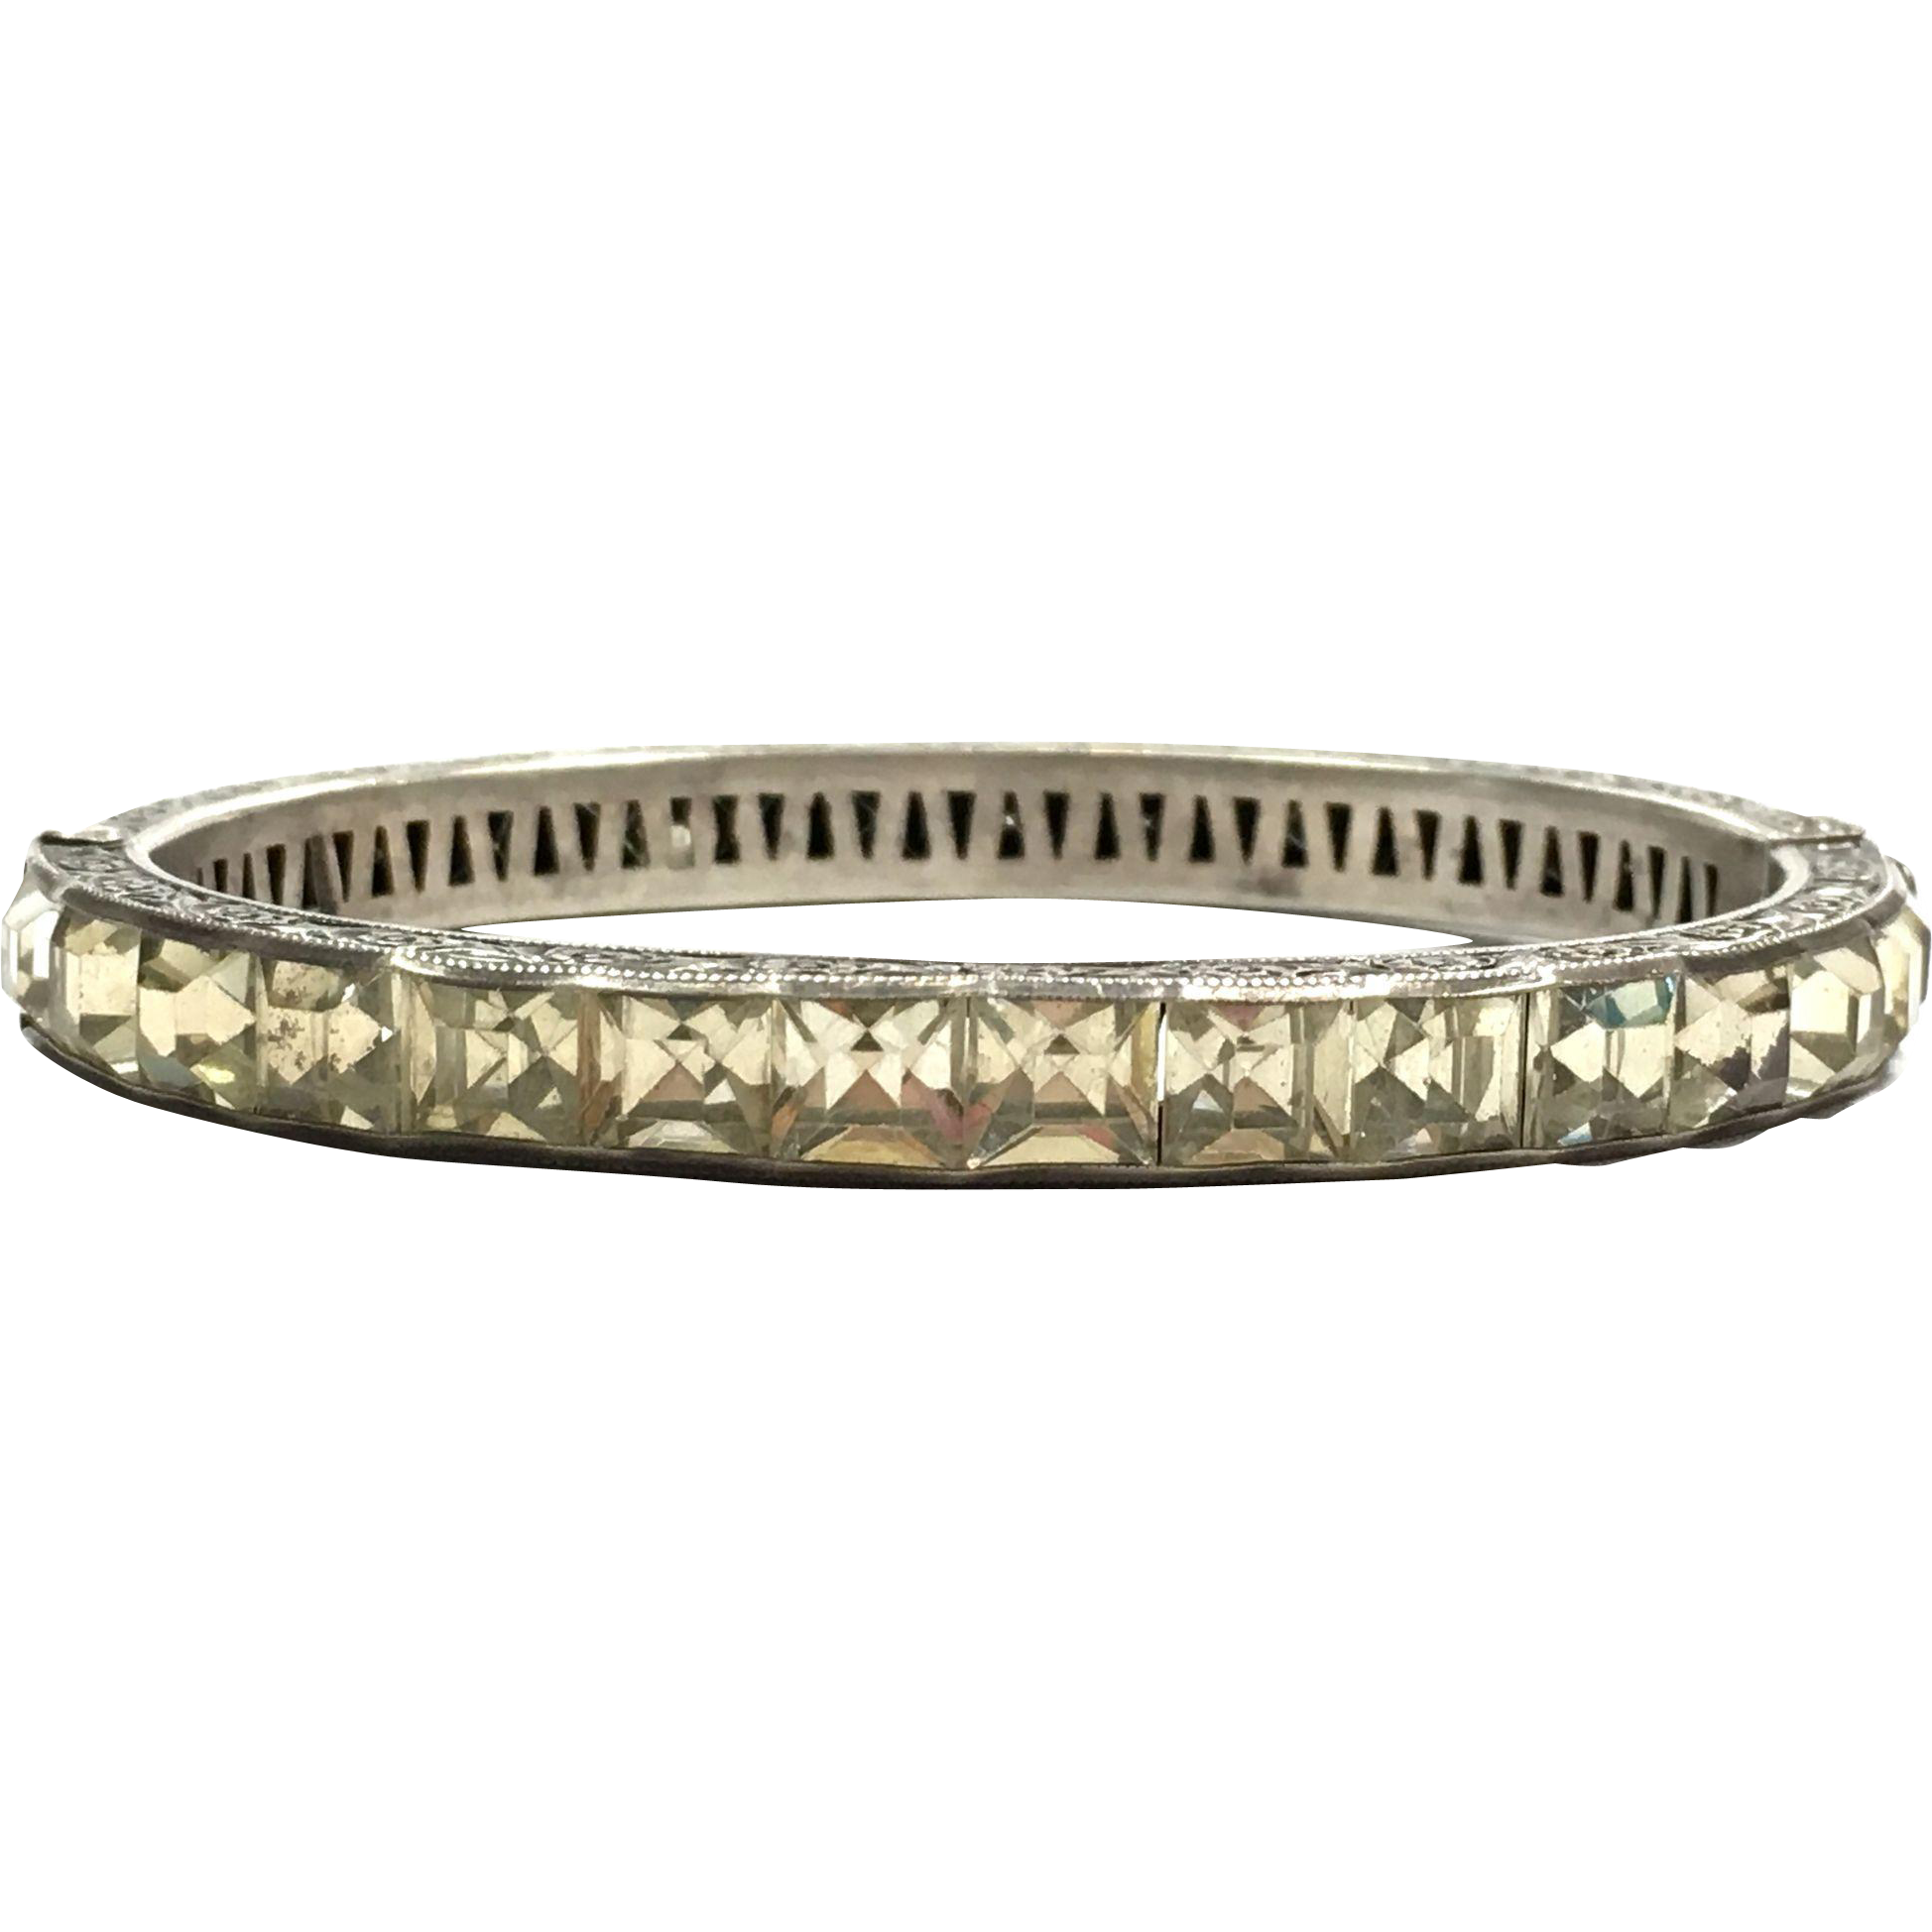 Vintage 1920s Art Deco wide sterling clamper bangle bracelet with clear stones